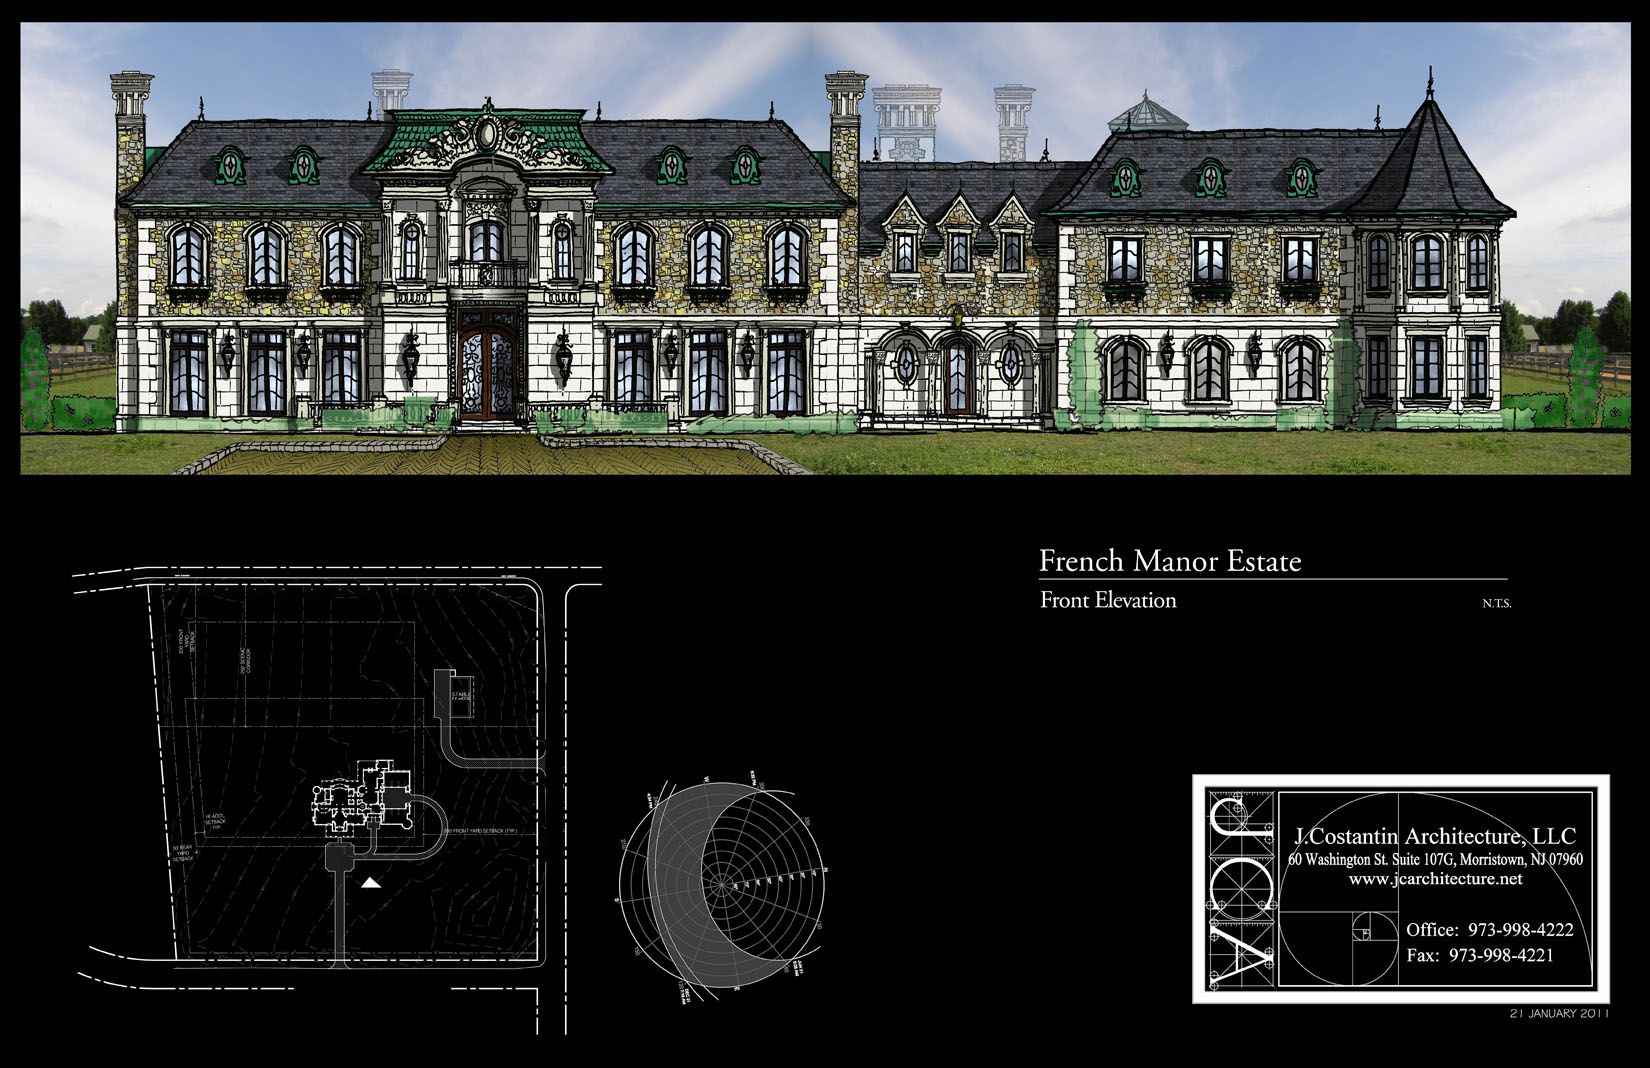 Jca Architects 25 000 sq ft front elevation j costantin architecture colts neck